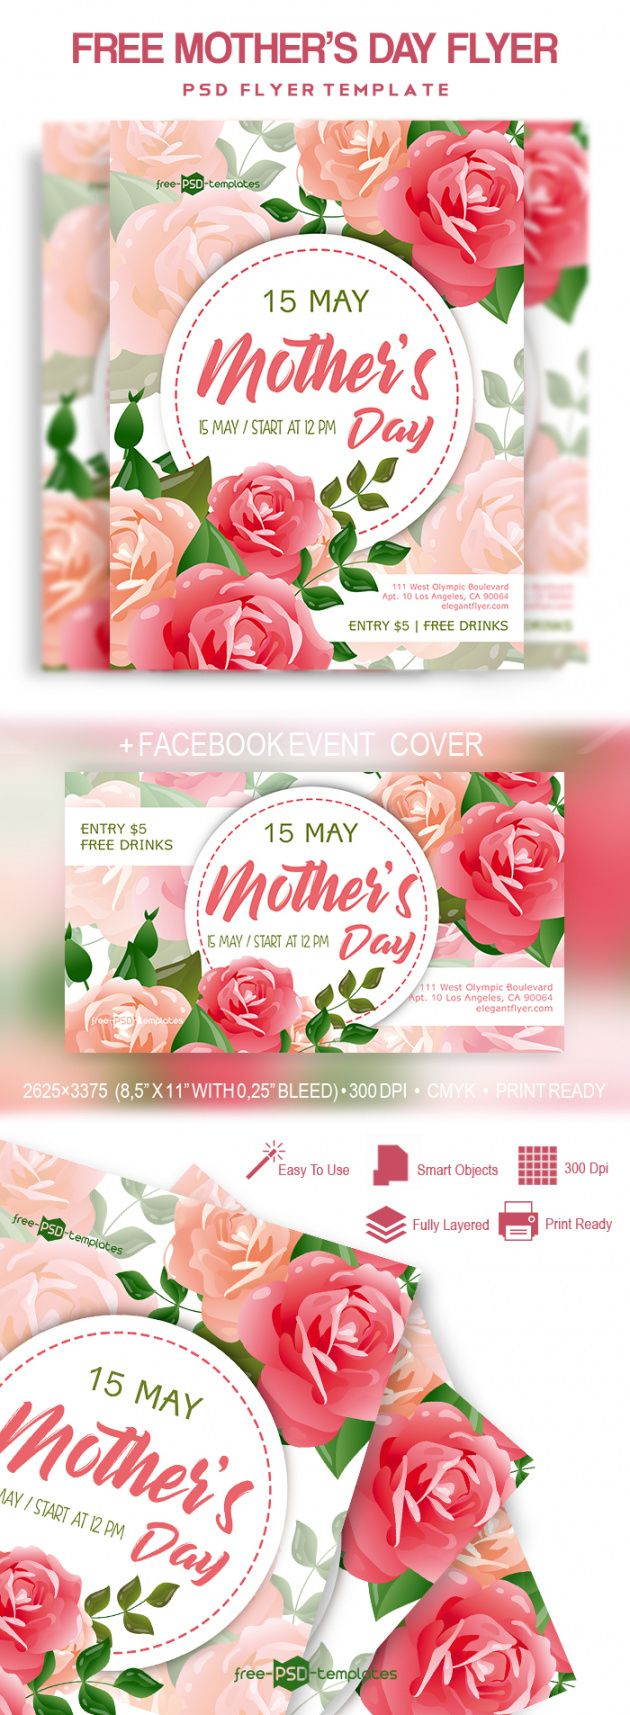 free mother's day flyer in psd  free psd templates mothers day flyer template and sample